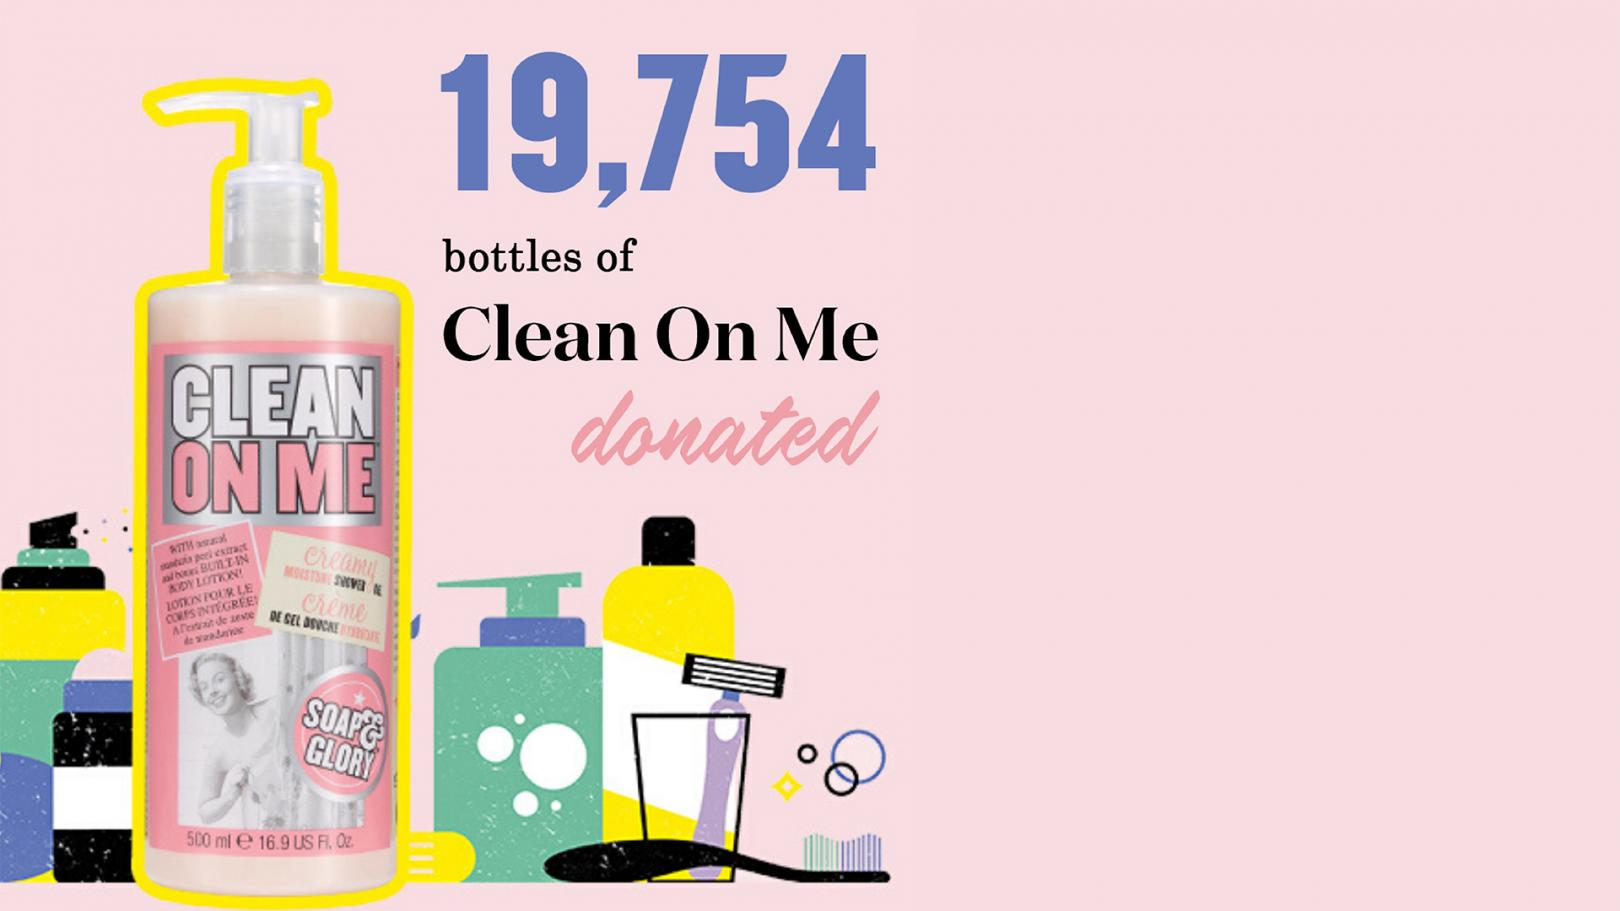 Soap and Glory infographic showing soap and glory products and the number 19,74 indicating the number of clean on bottles donated